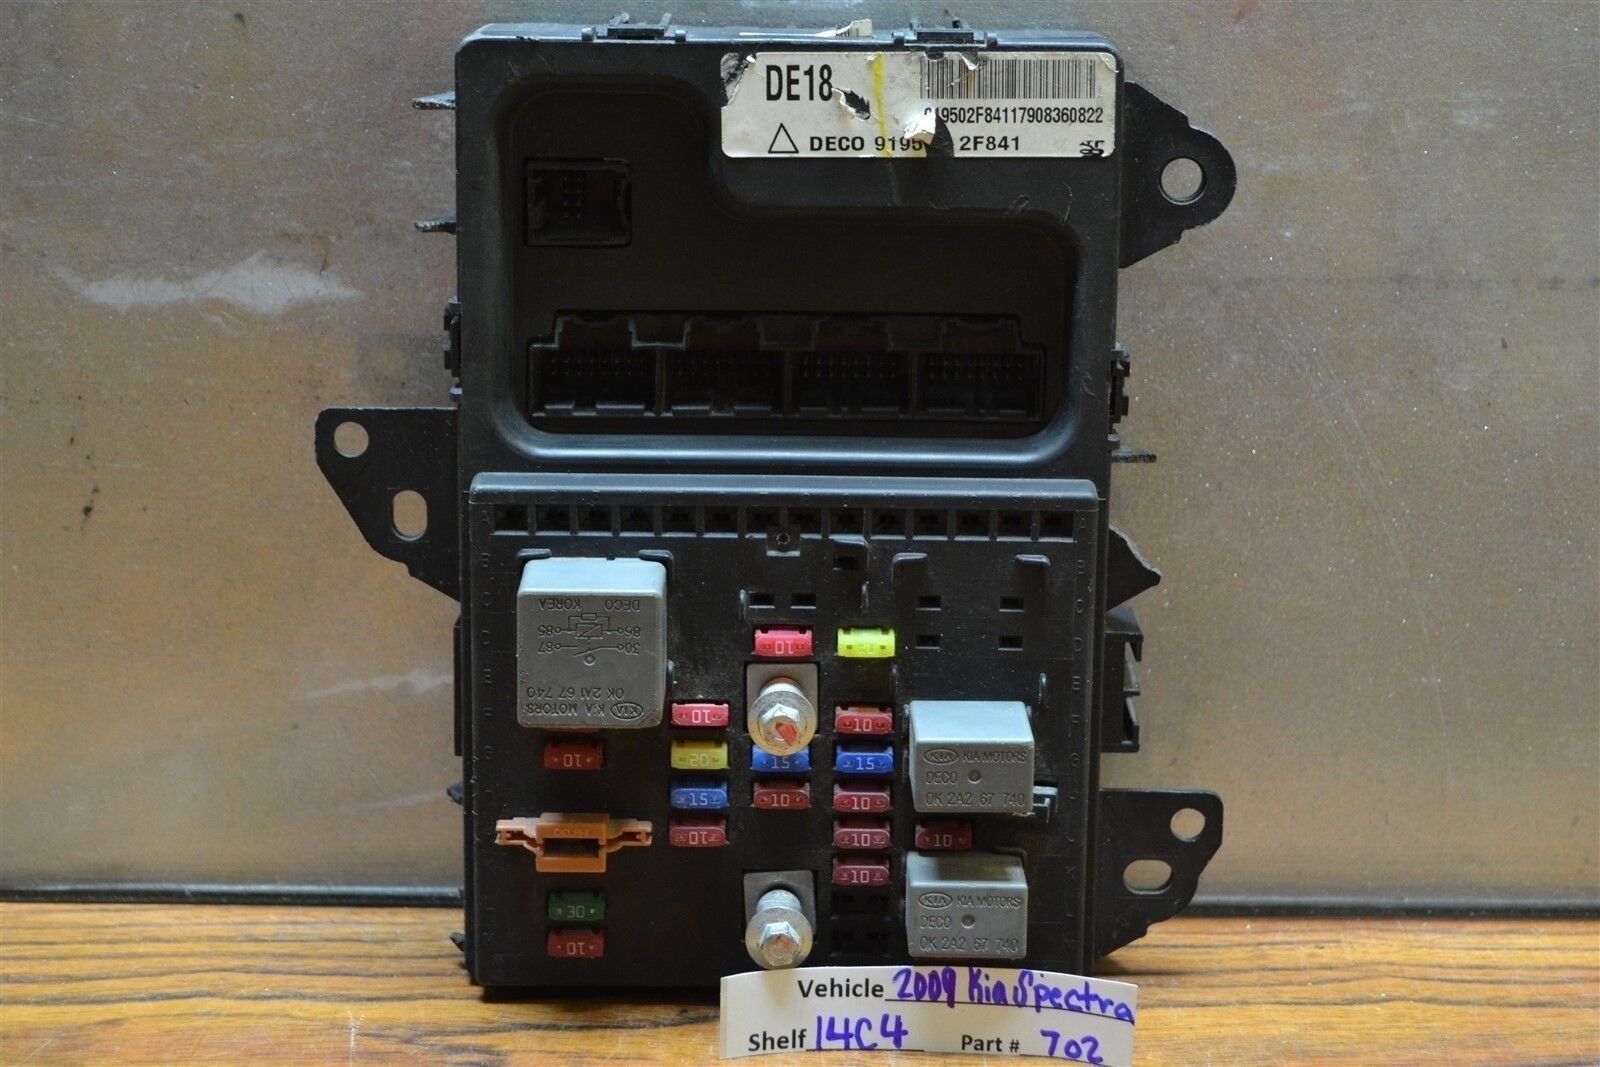 Kium Spectra5 Fuse Box Location